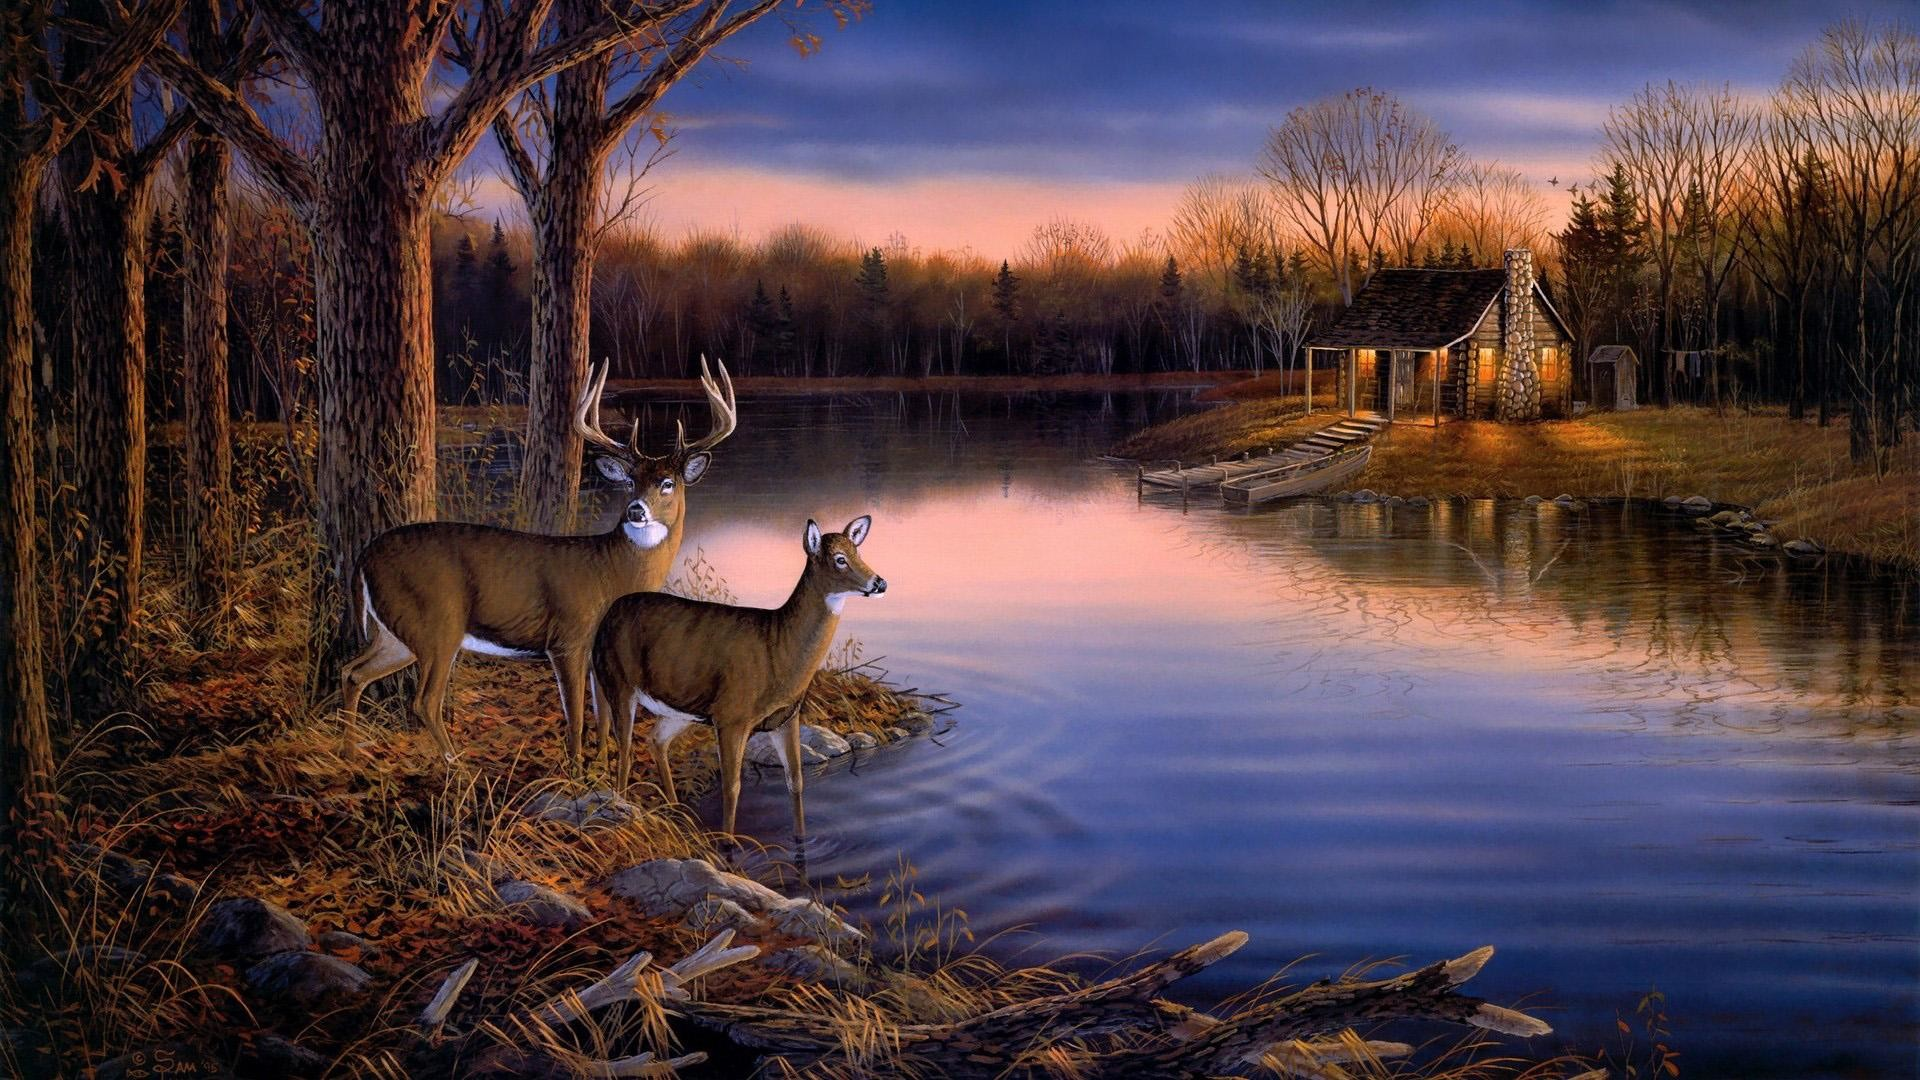 1920x1080 Deer Hunting Wallpaper Border | ... ,landscape wallpaper Picture   1080p hd wallpaper